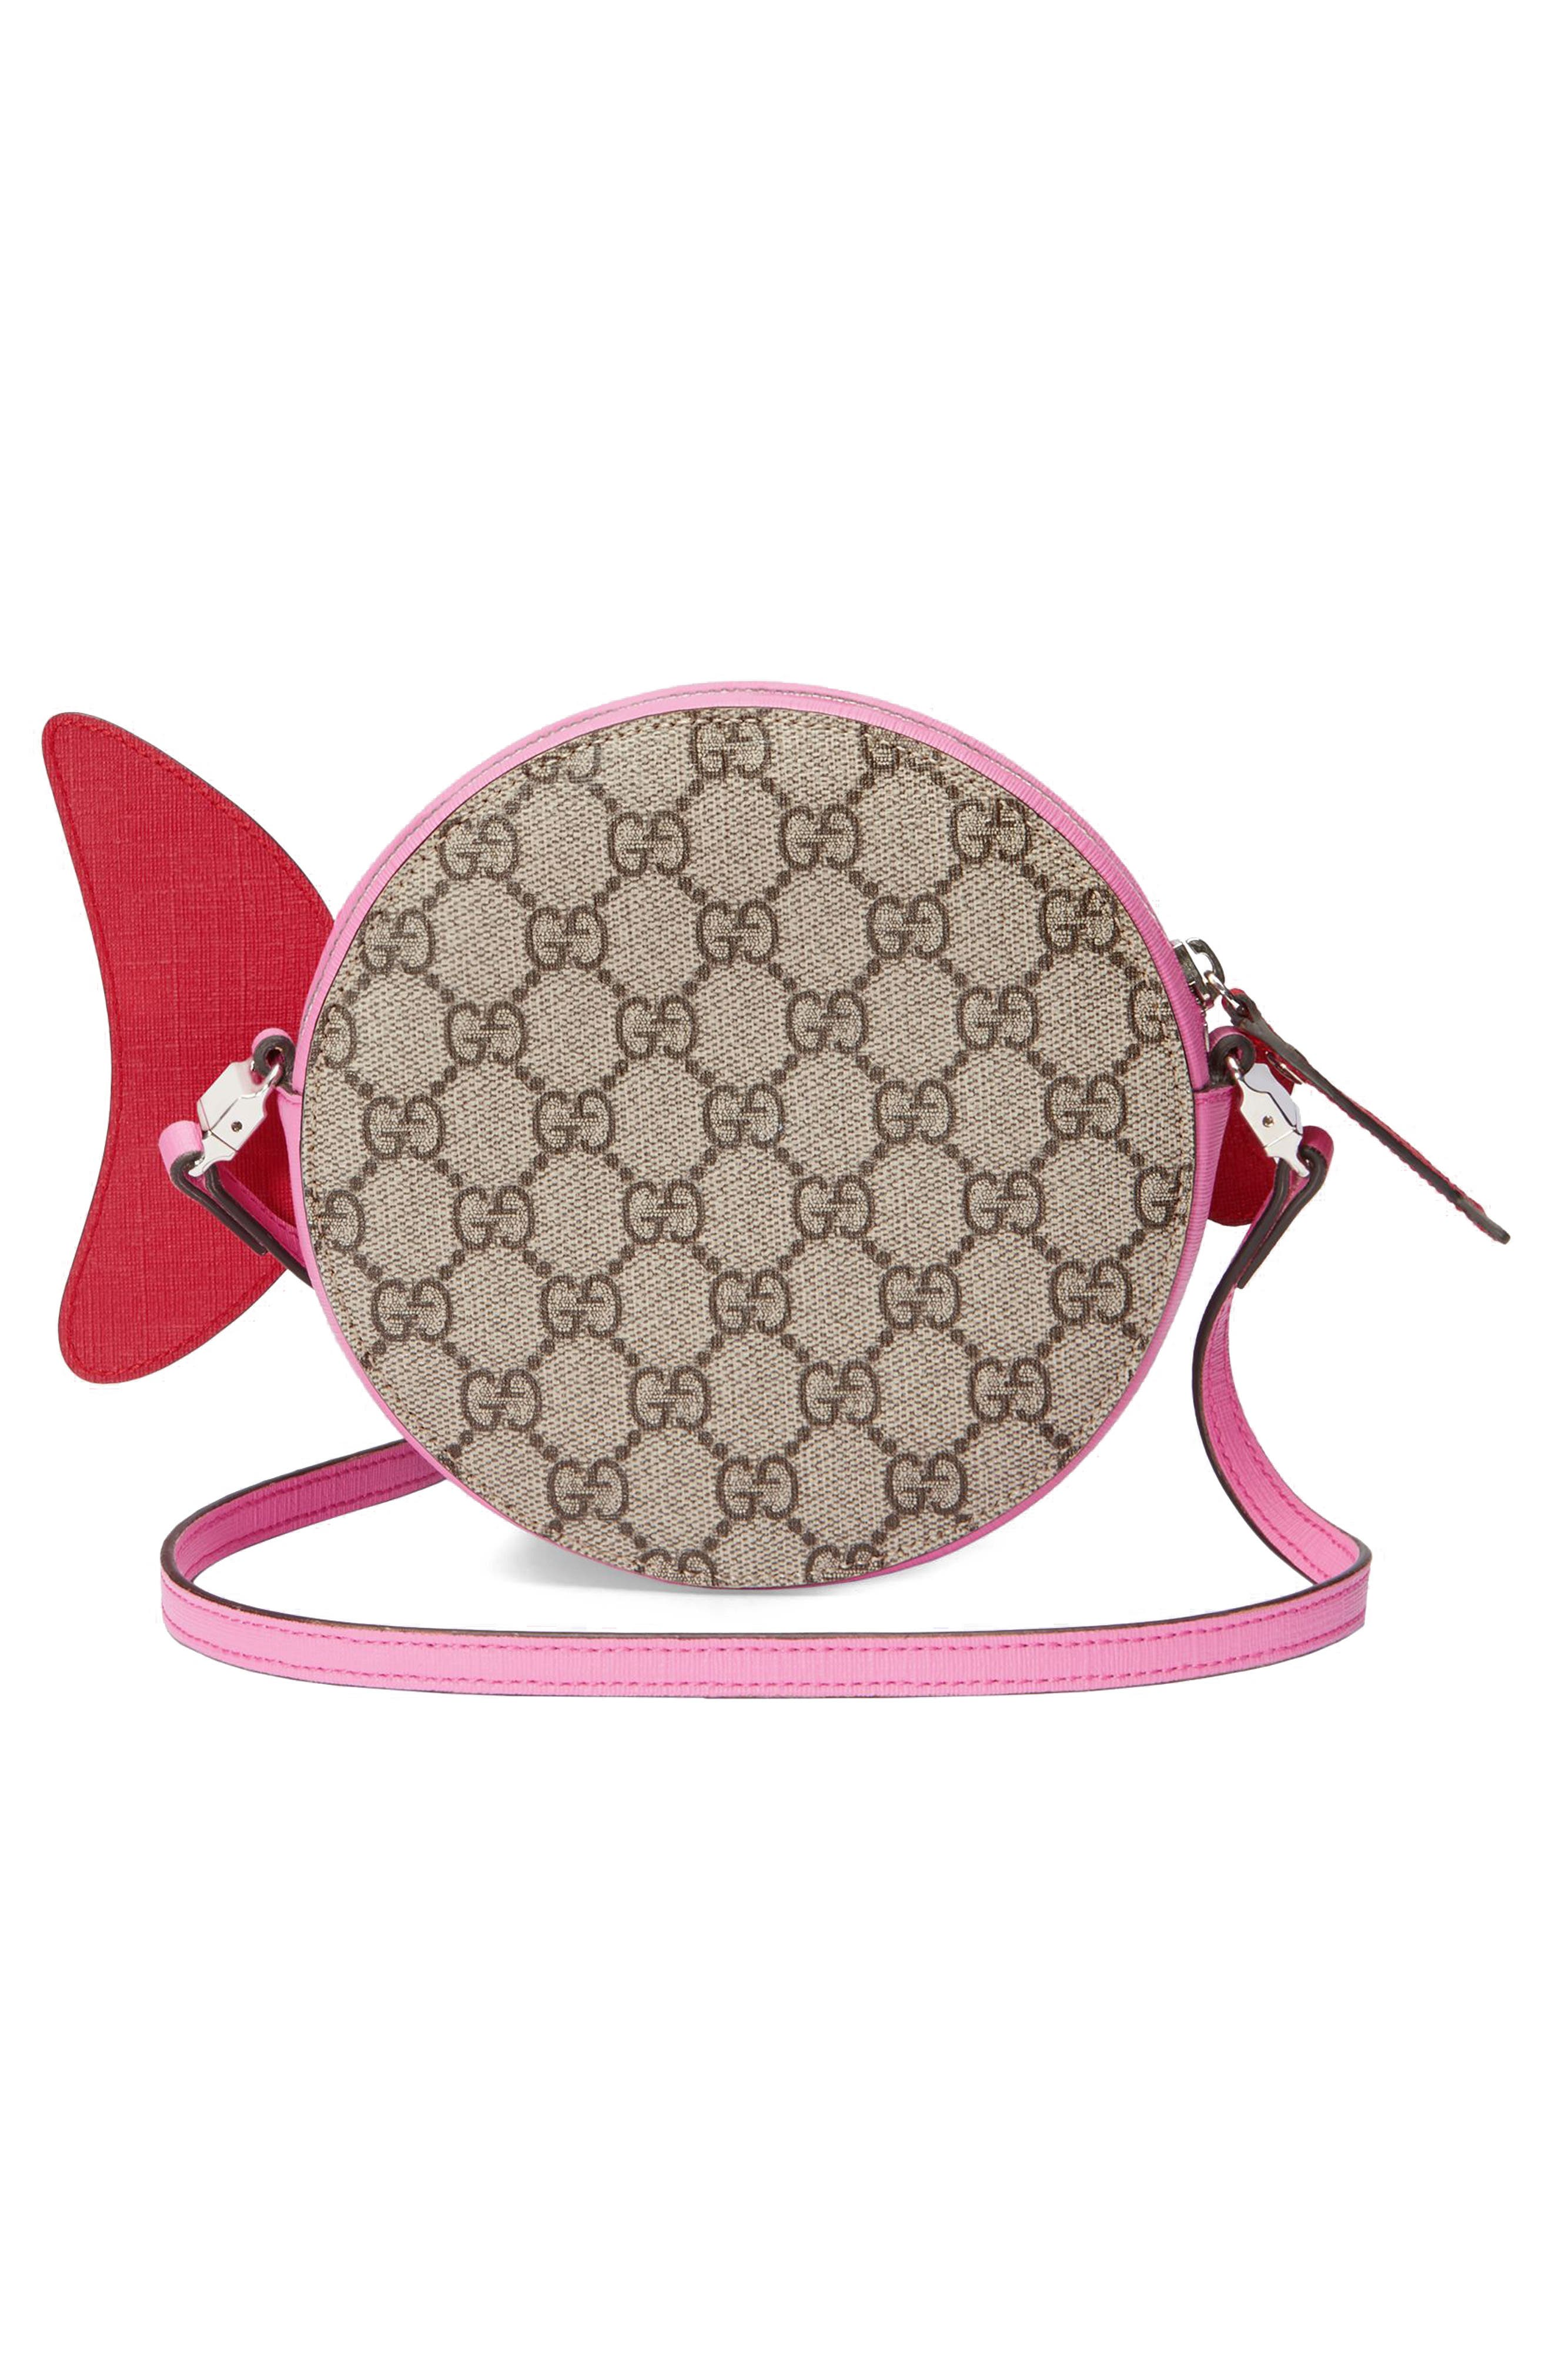 Gucci GG Supreme Fish Canvas Shoulder Bag,                             Alternate thumbnail 2, color,                             Copper/ Rose